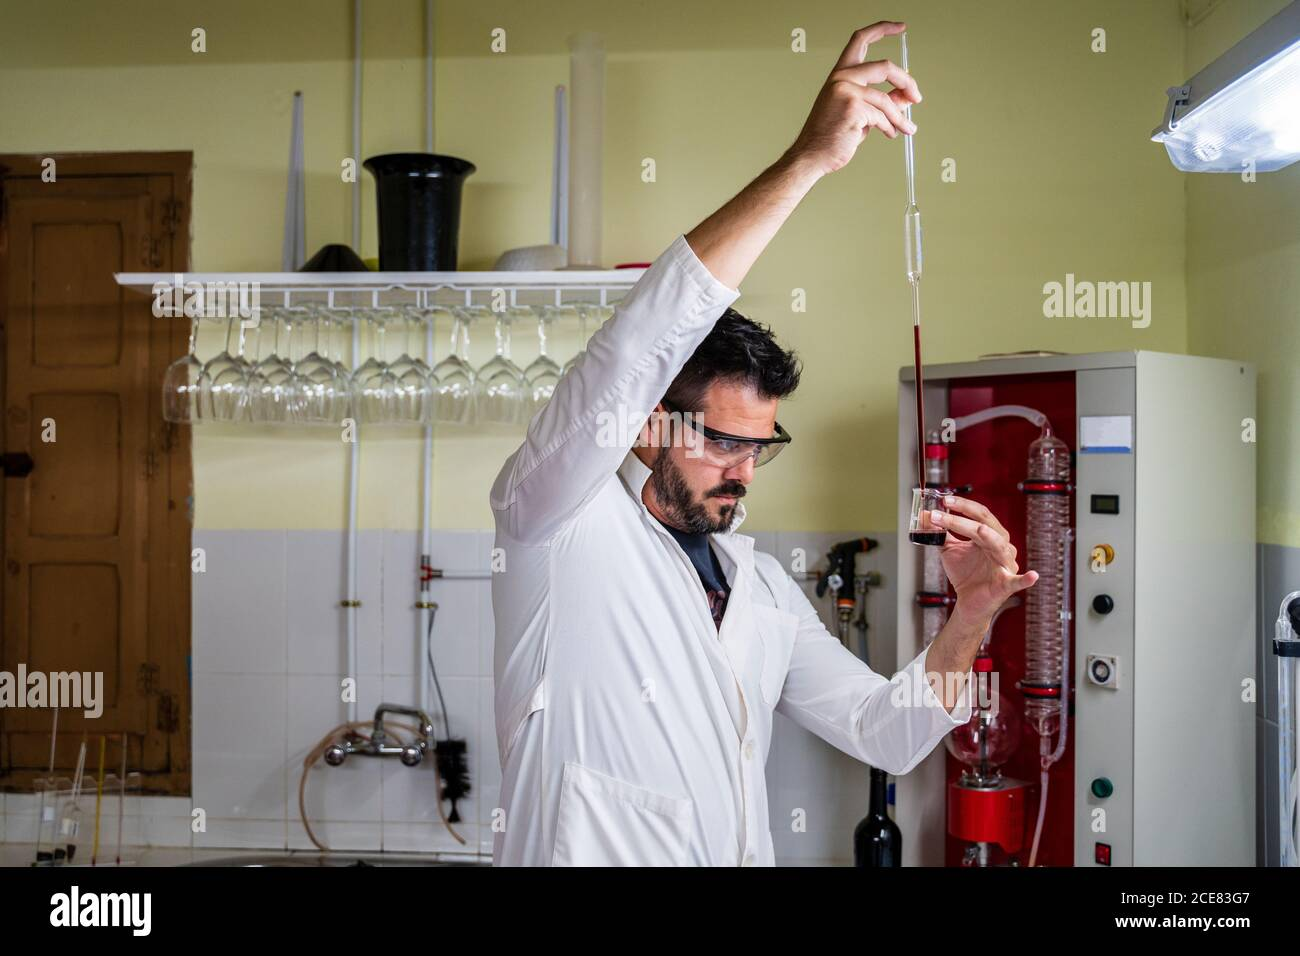 Long White Robe High Resolution Stock Photography And Images Alamy